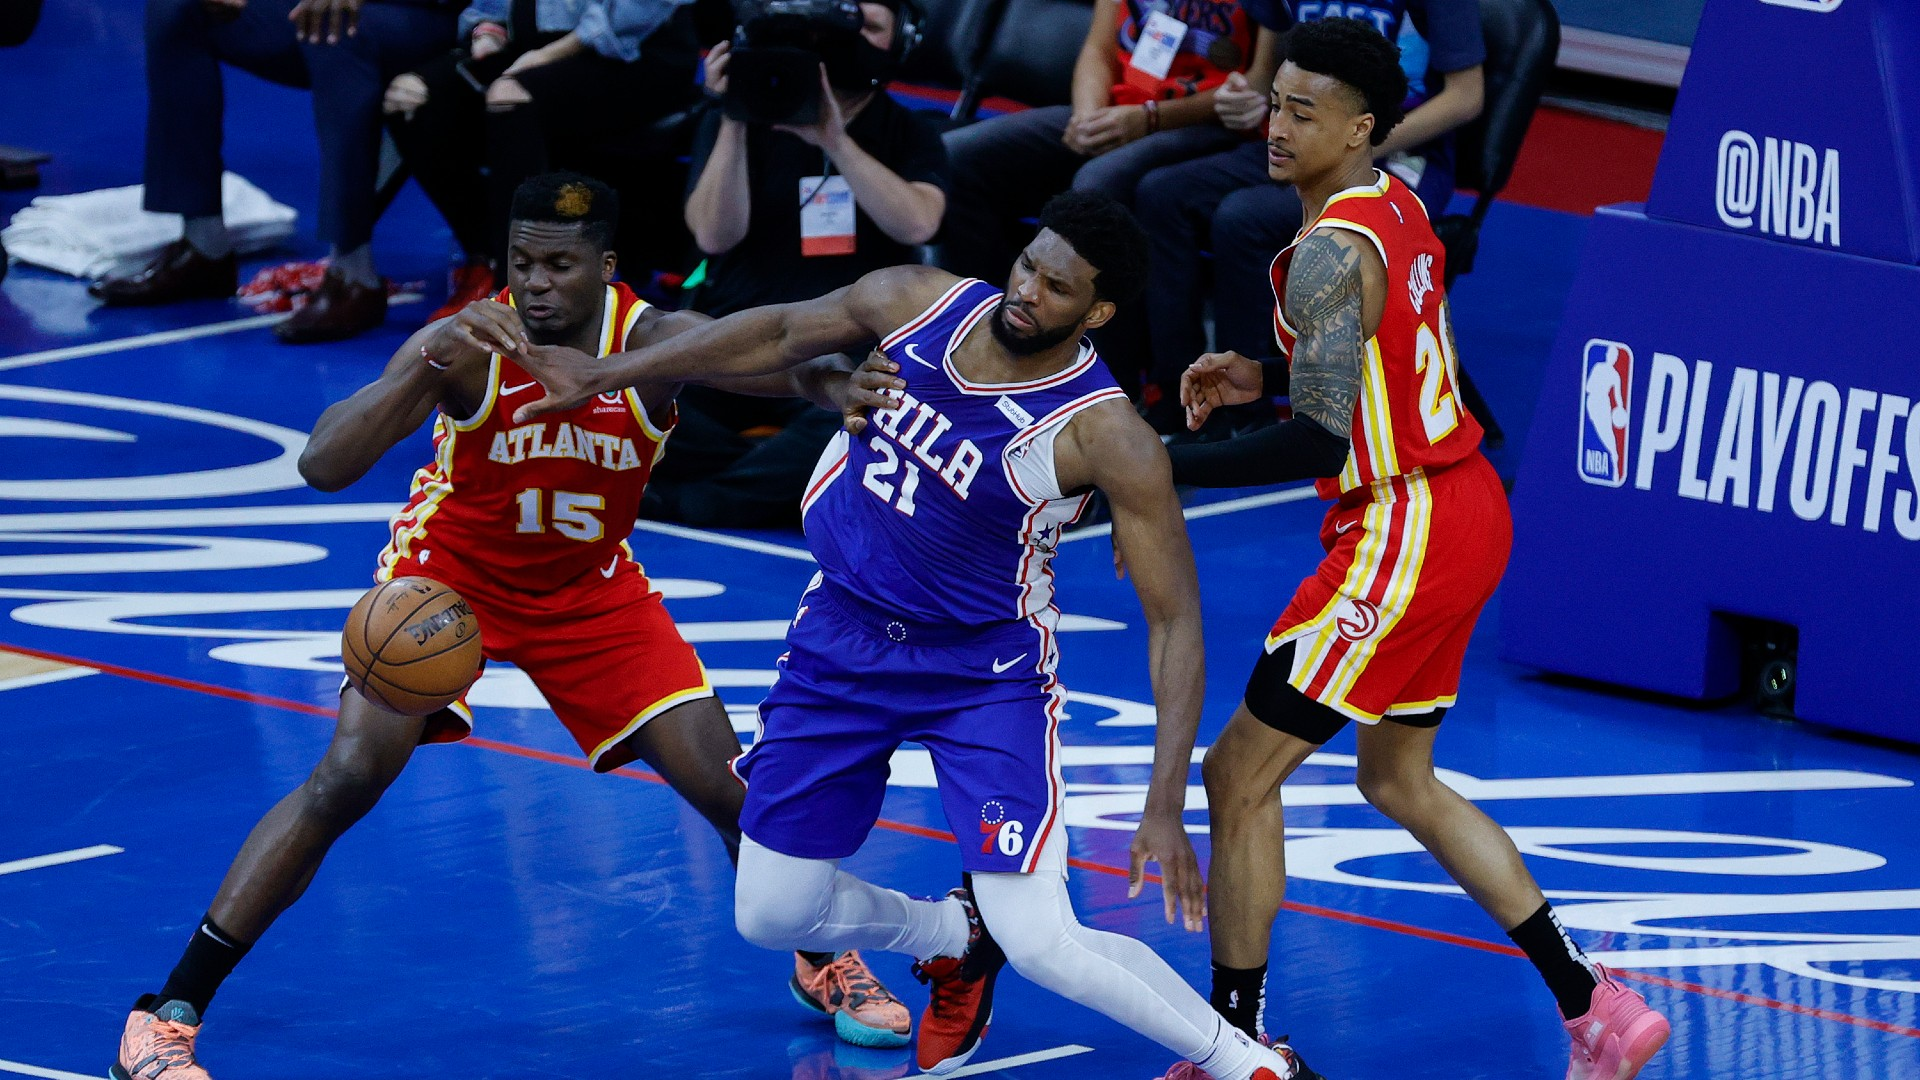 The 76ers have fallen, according to the numbers: The Hawks take on Game 5 as Philadelphia melts in the second half